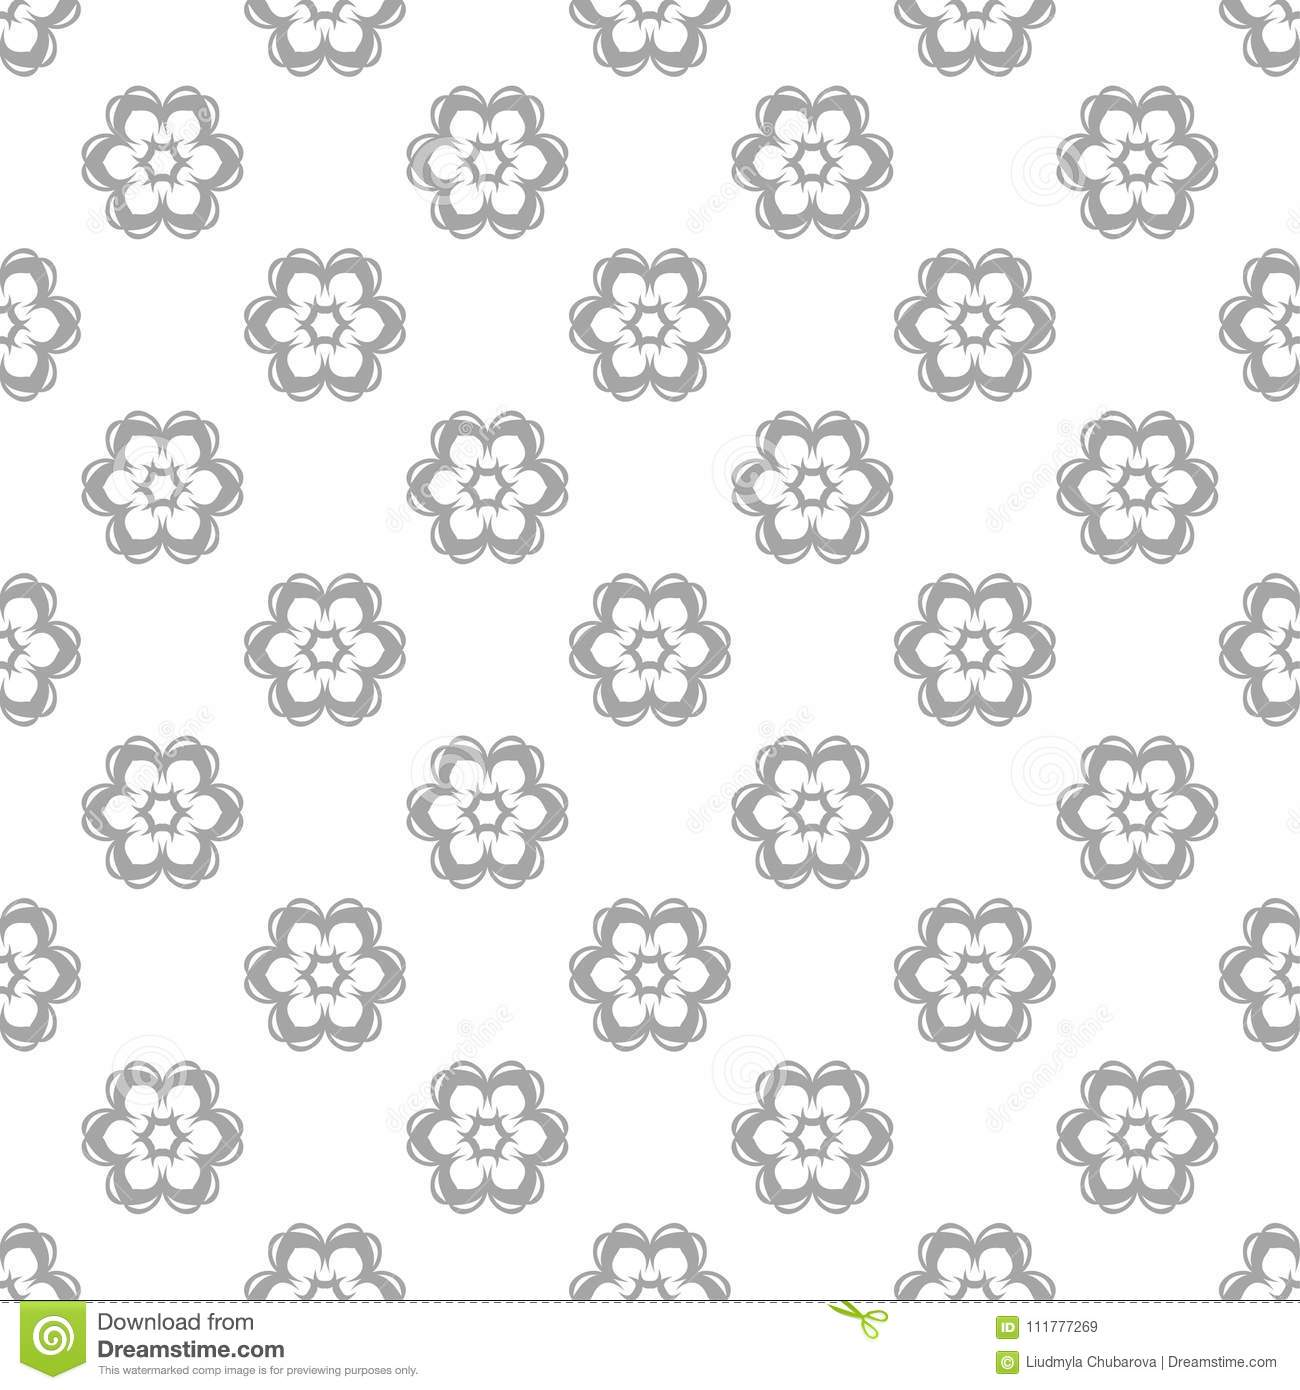 Gray and white seamless pattern